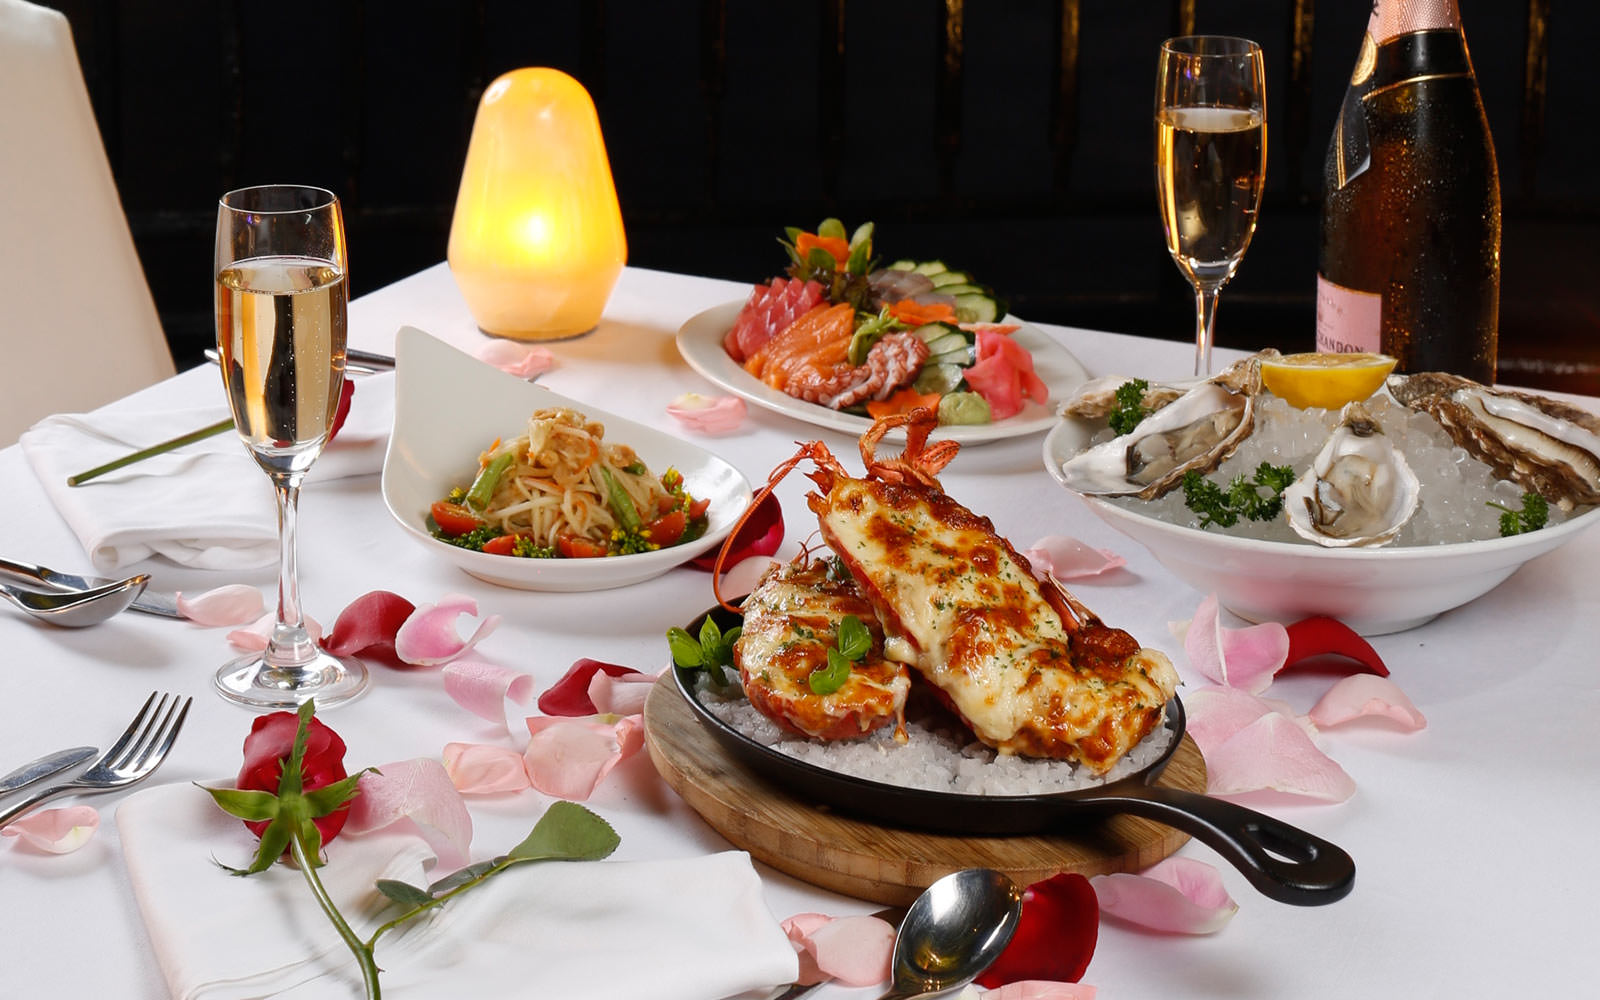 9 Romantic Restaurants In Bangkok With Valentine's Day Deals To Impress Your Date